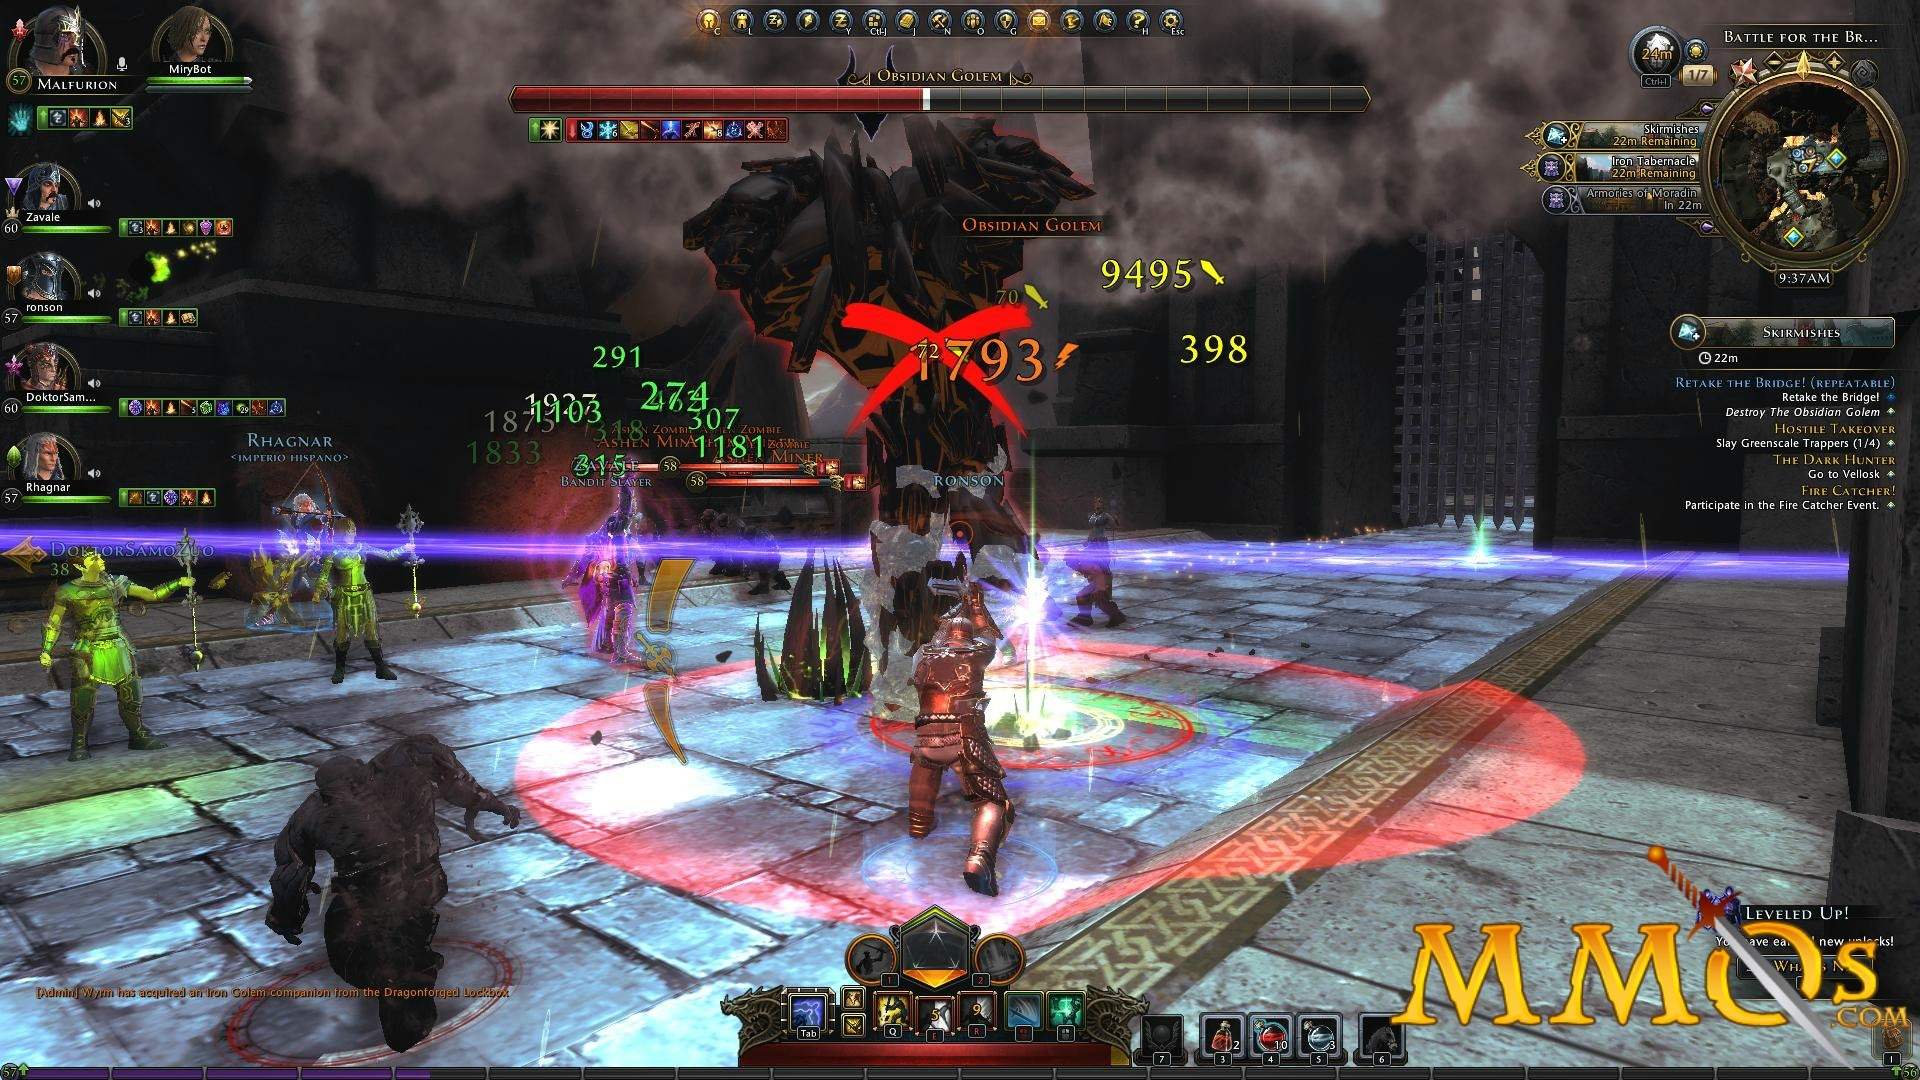 Companions in Neverwinter play an integral part of the gear